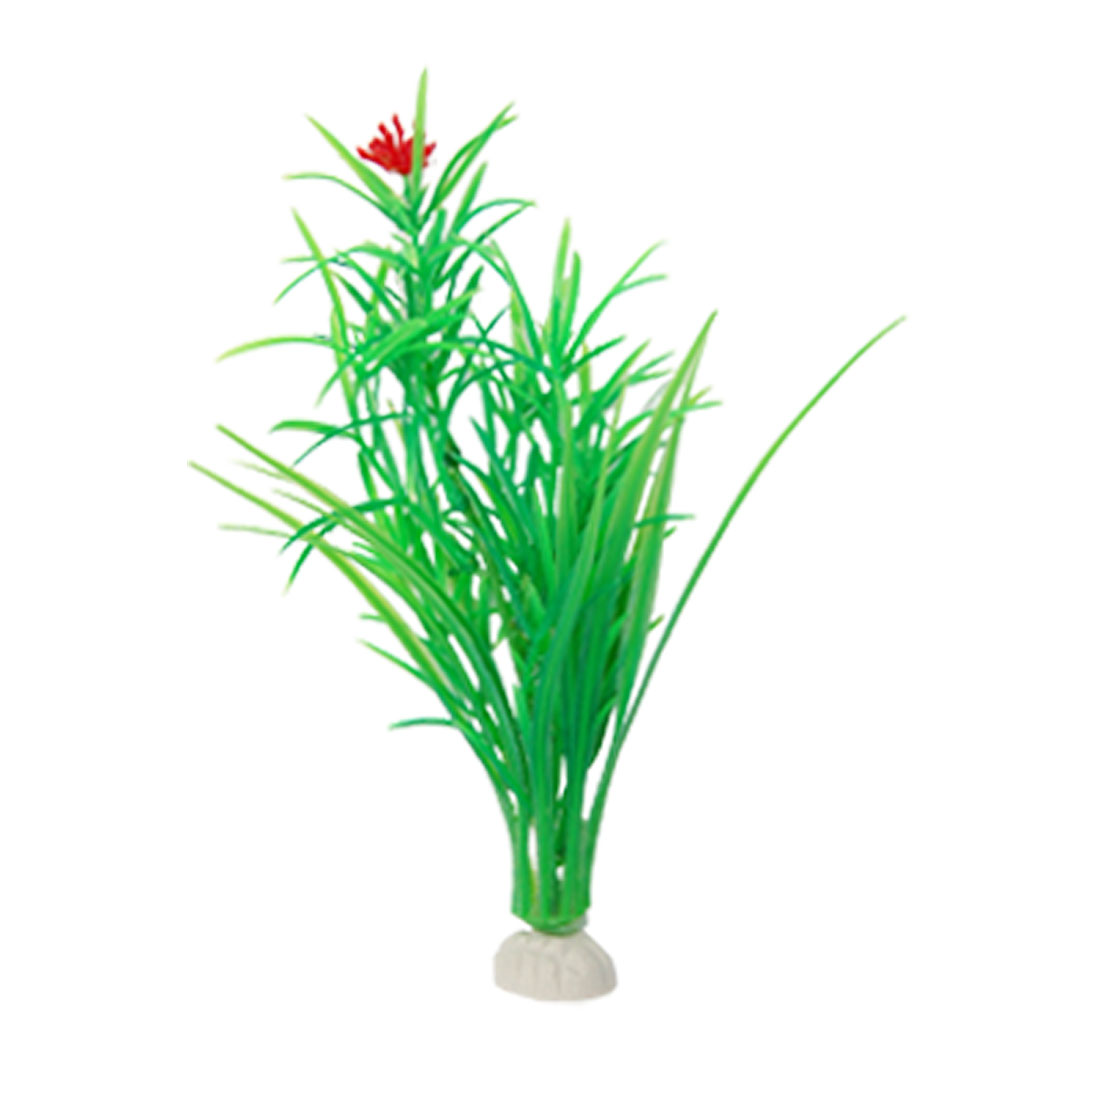 Fish Tank Aquarium Green Plastic Aquatic Plant Ornament 3 Pcs